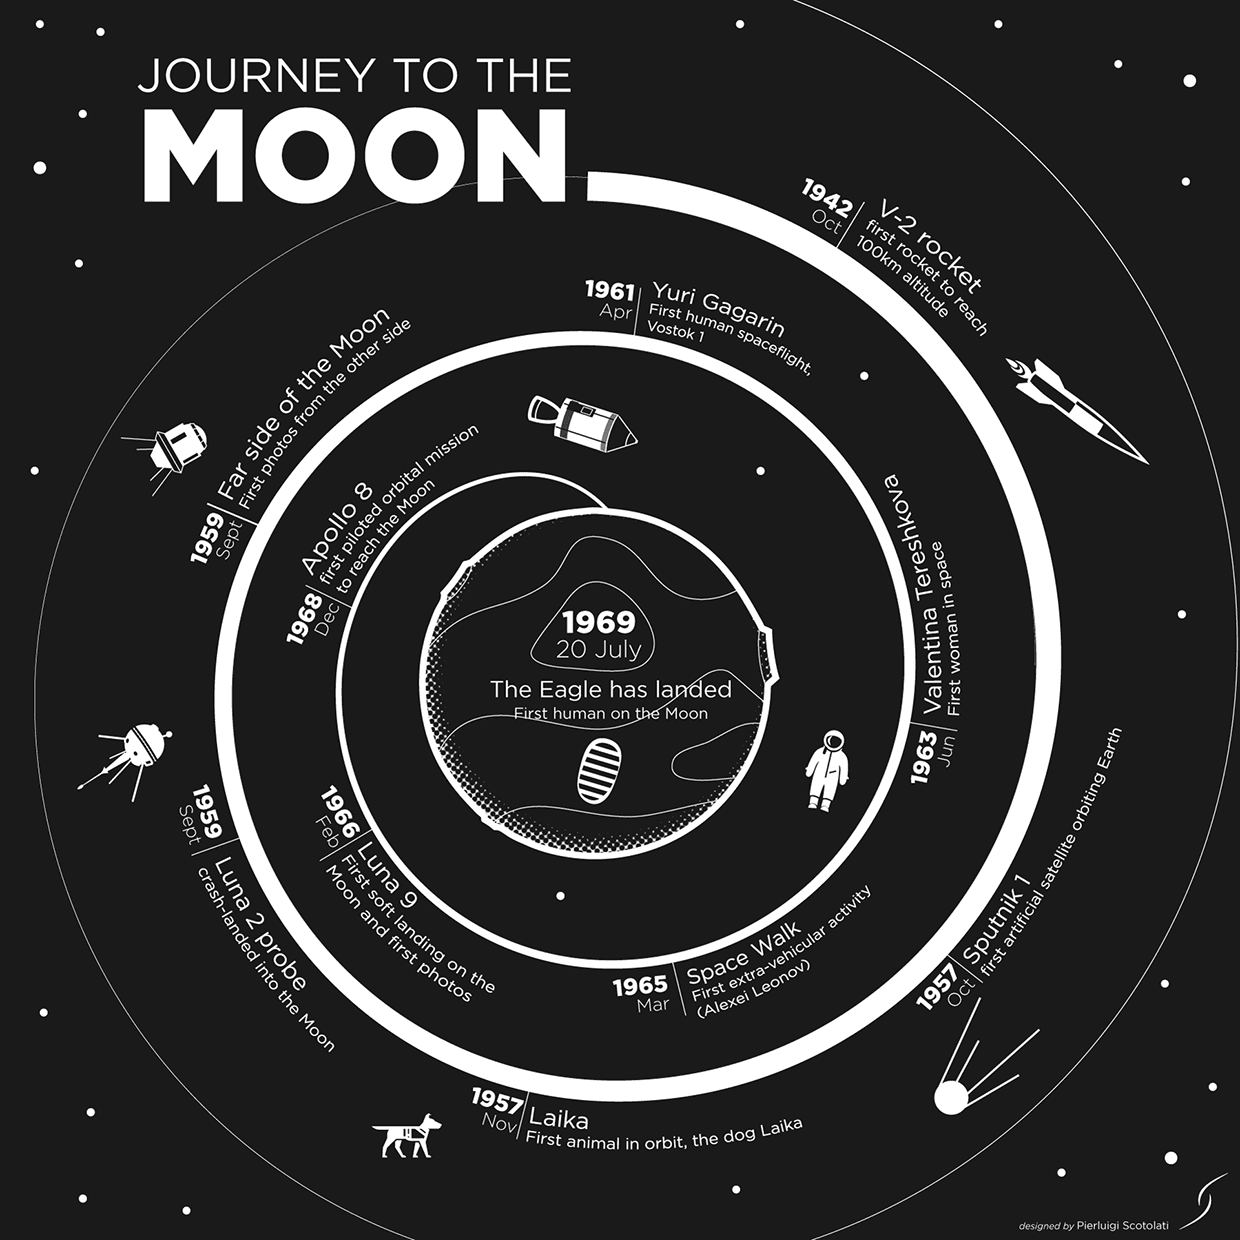 Our Journey To The Moon [OC]